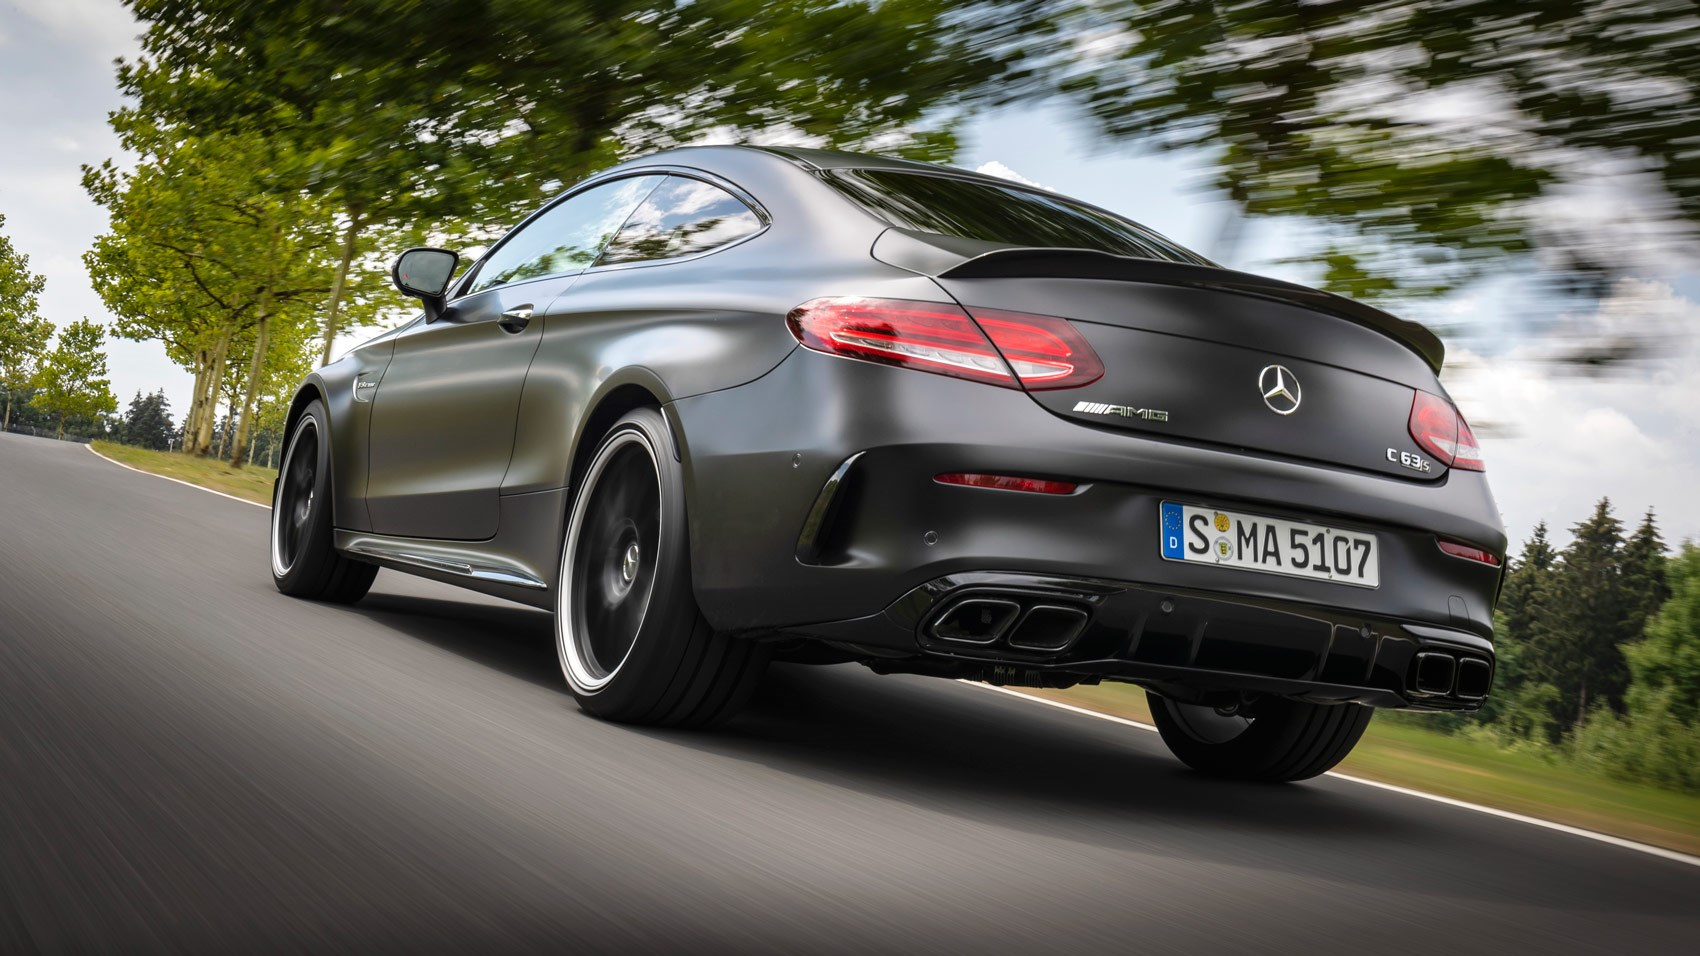 C63 S coupe rear tracking